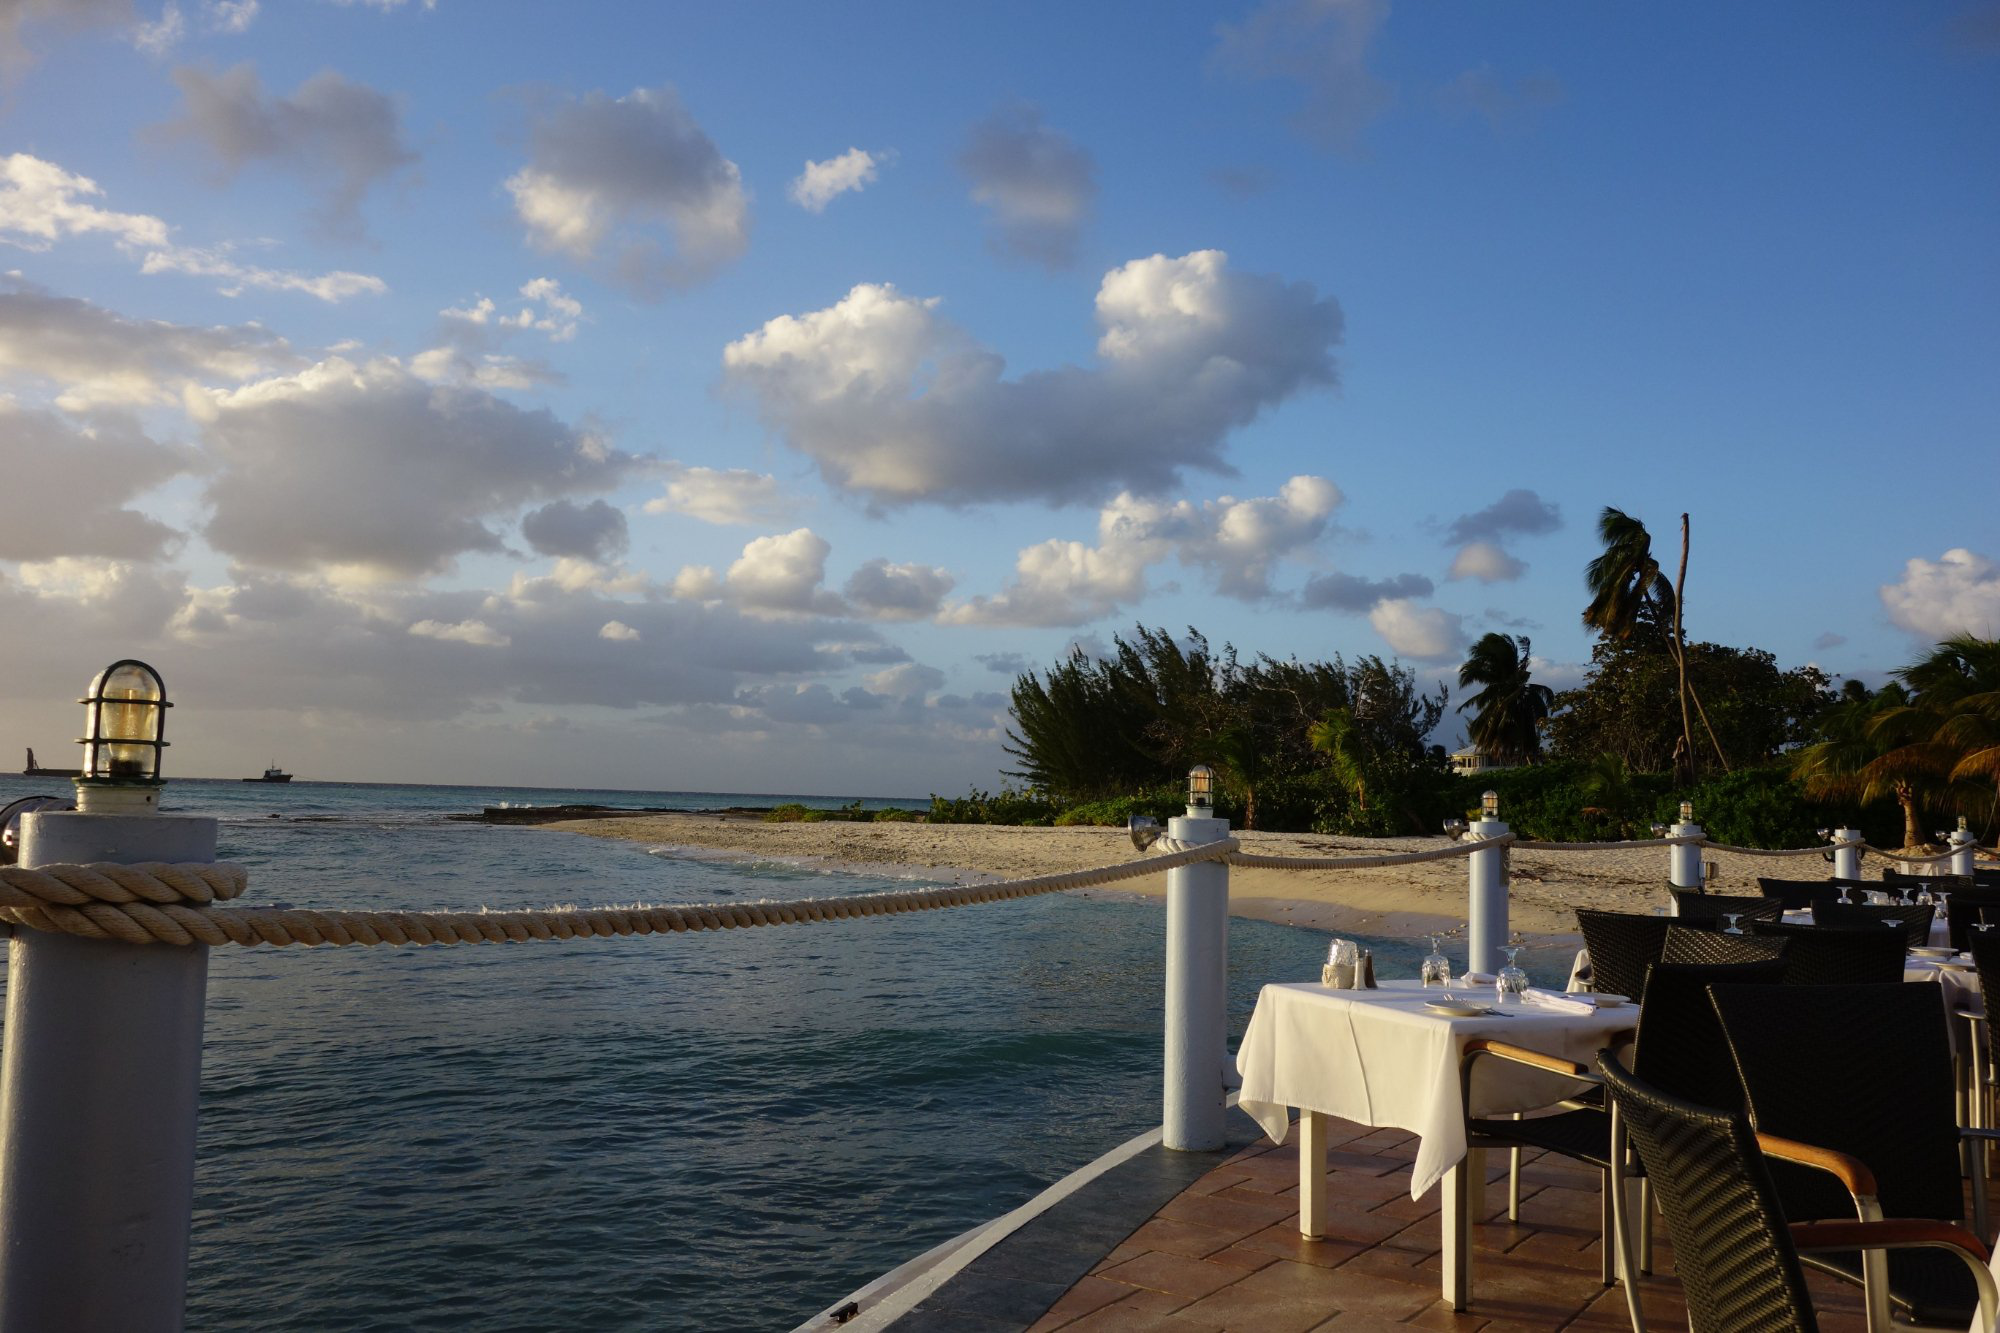 Waterfront Dining at the Wharf Restaurant, Cayman Islands